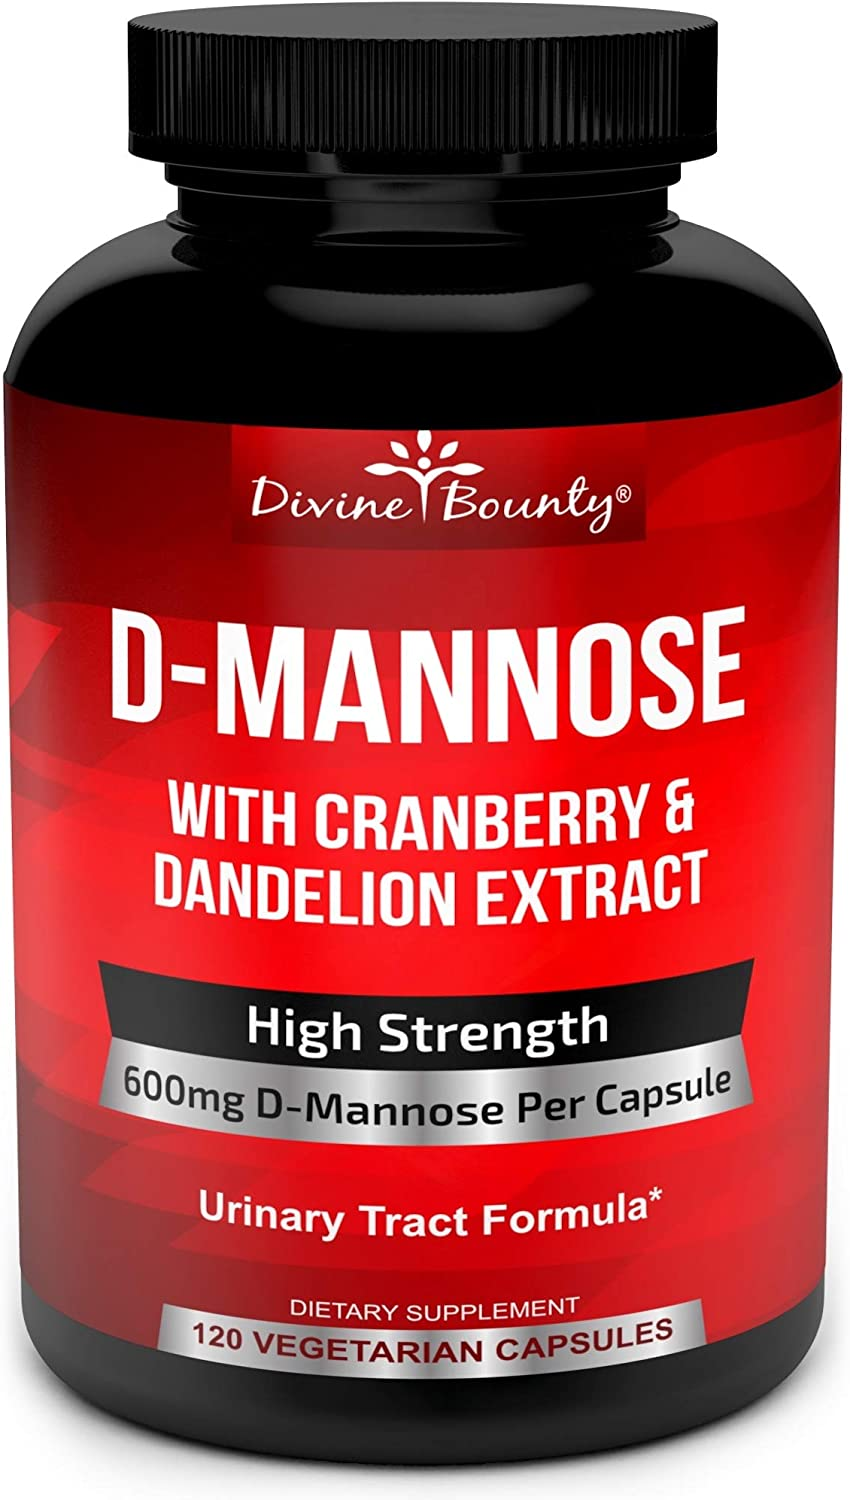 D-Mannose Capsules - 600mg D Mannose Powder per Capsule with Cranberry and Dandelion Extract to Support Normal Urinary Tract Health - 120 Veggie Capsules: Health & Personal Care